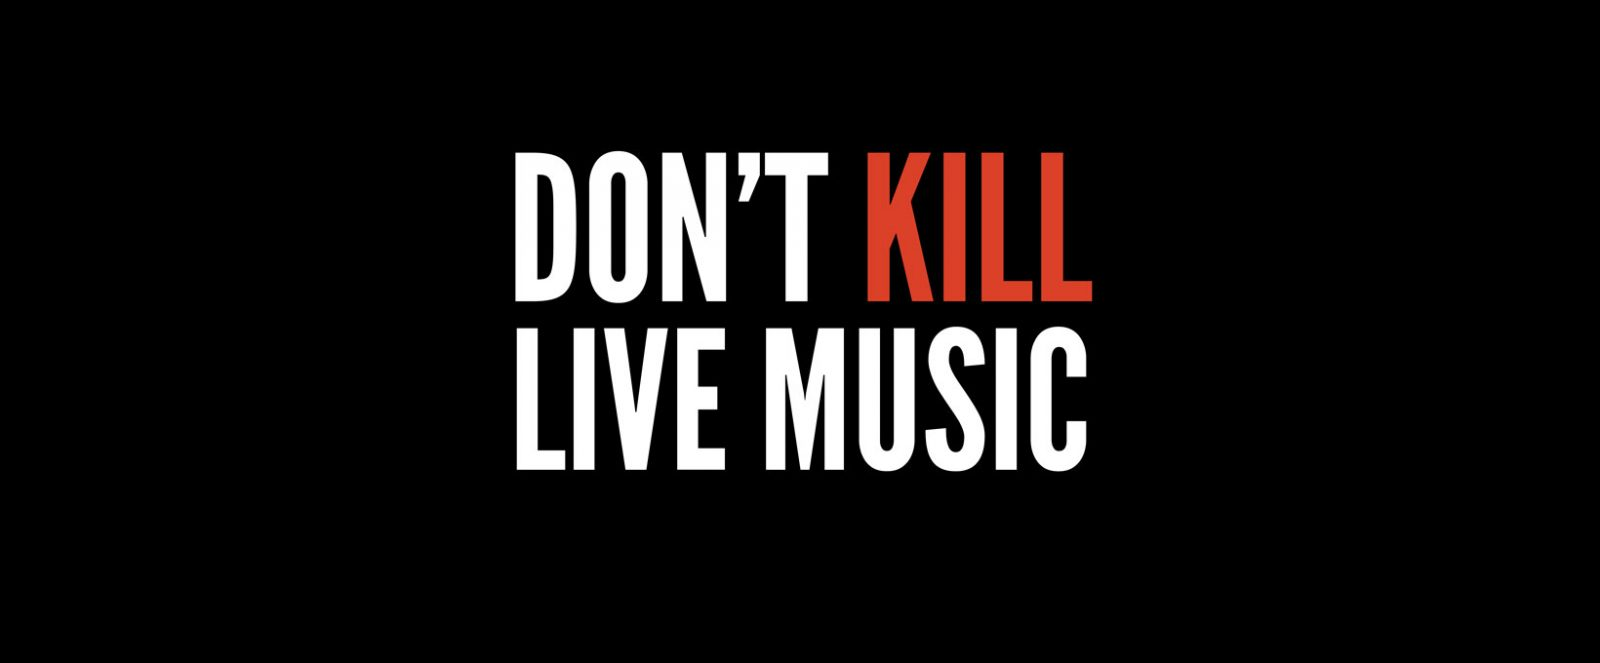 Don't Kill Live Music